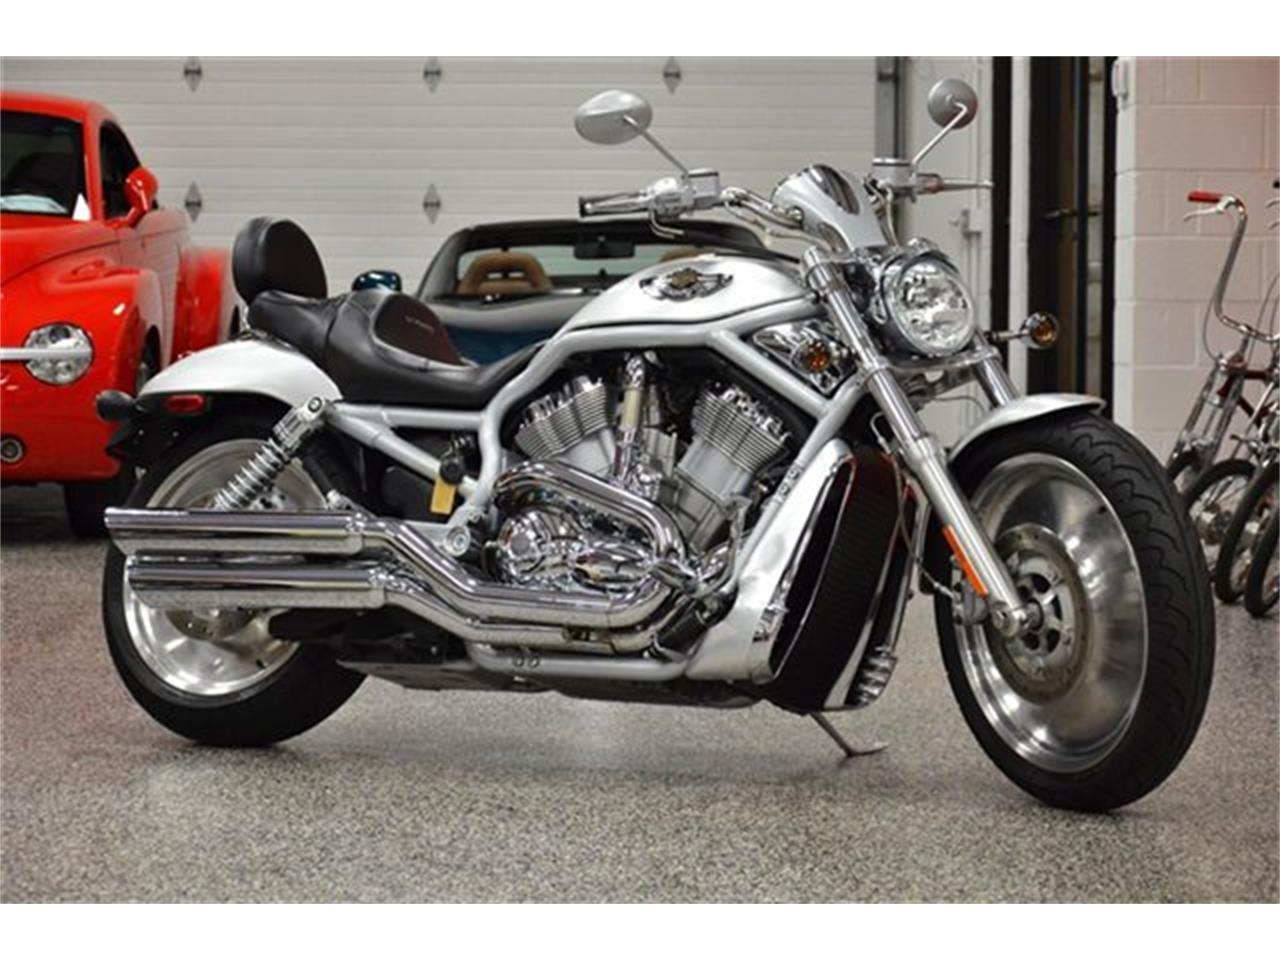 2003 Harley-Davidson VRSC for sale in Plainfield, IL – photo 39